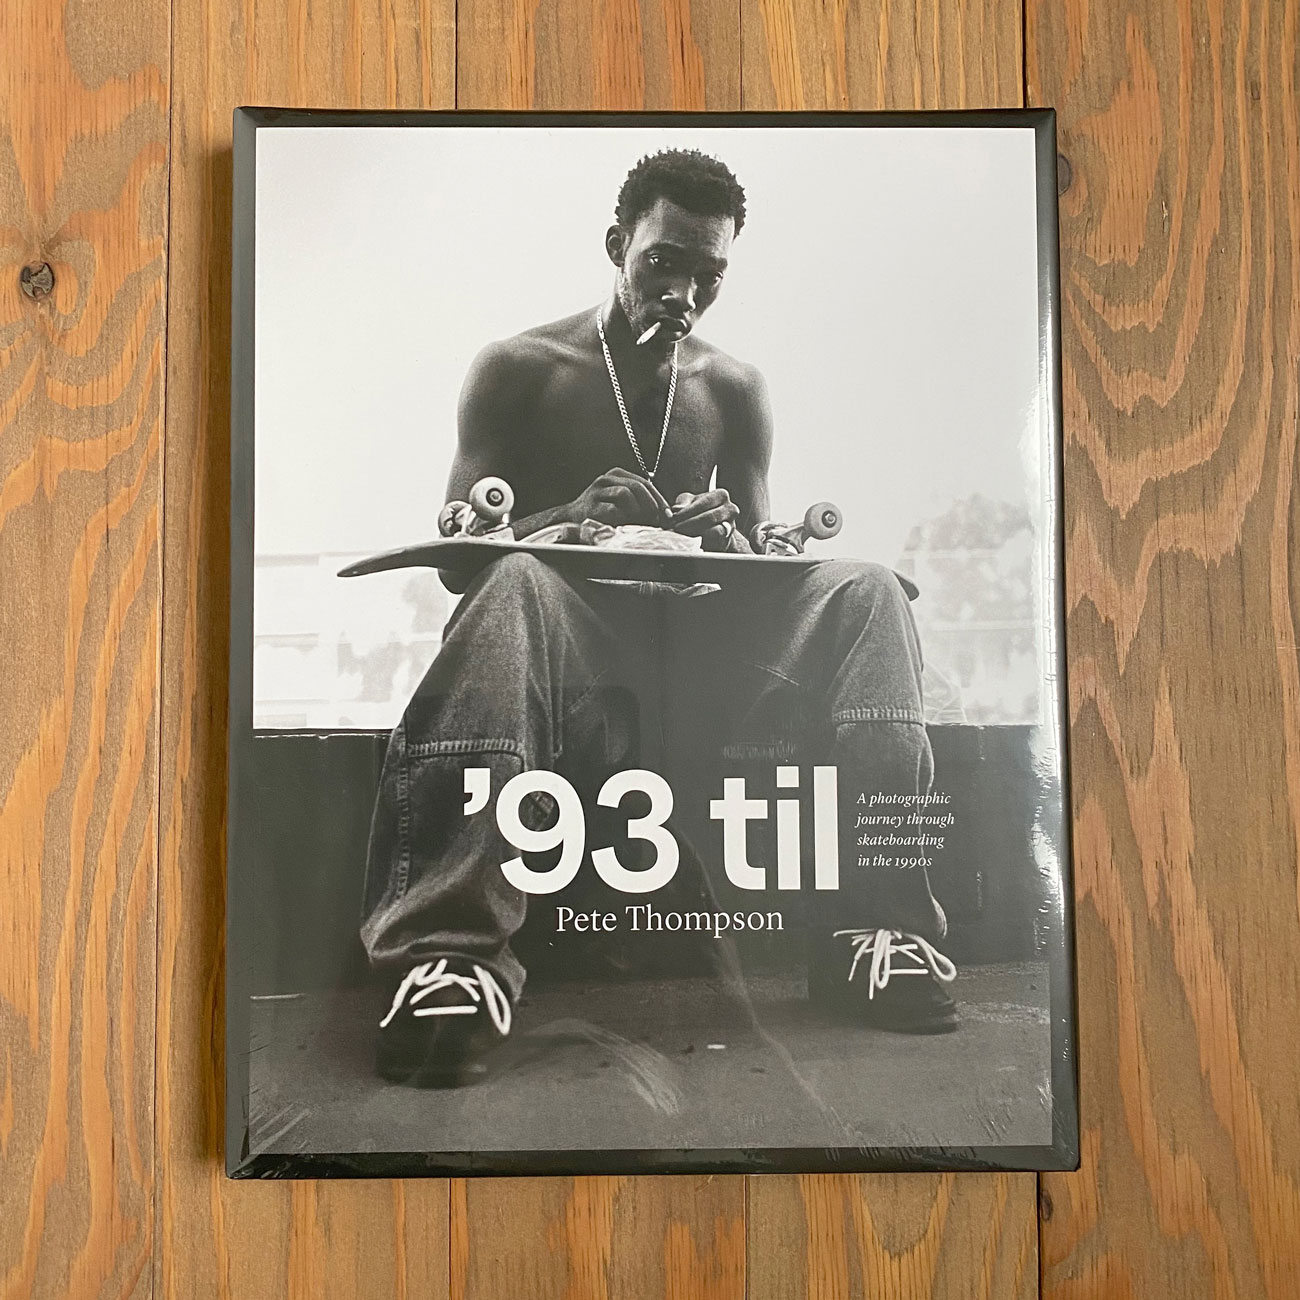 93 TIL PHOTO BOOK BY PETE THONPSON